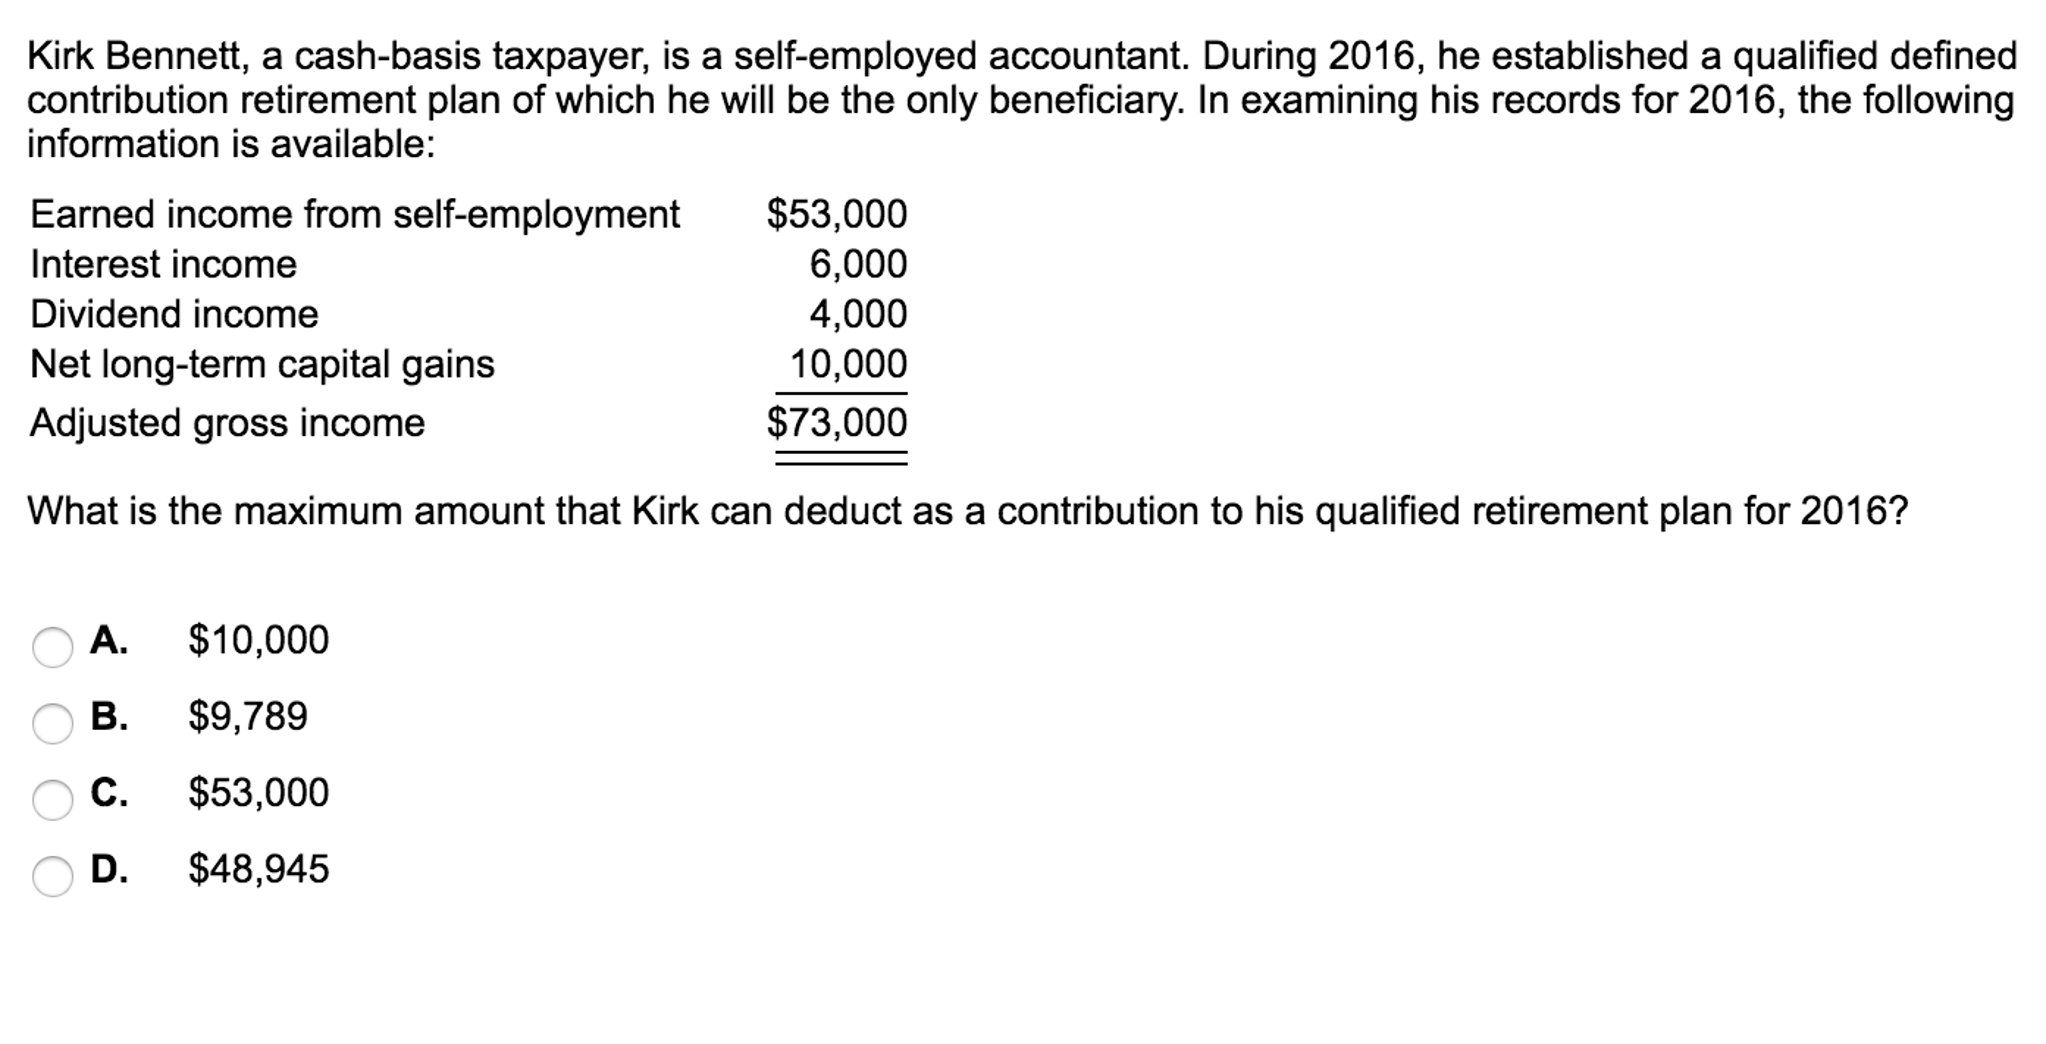 solved: kirk bennett, a cash-basis taxpayer, is a self-emp